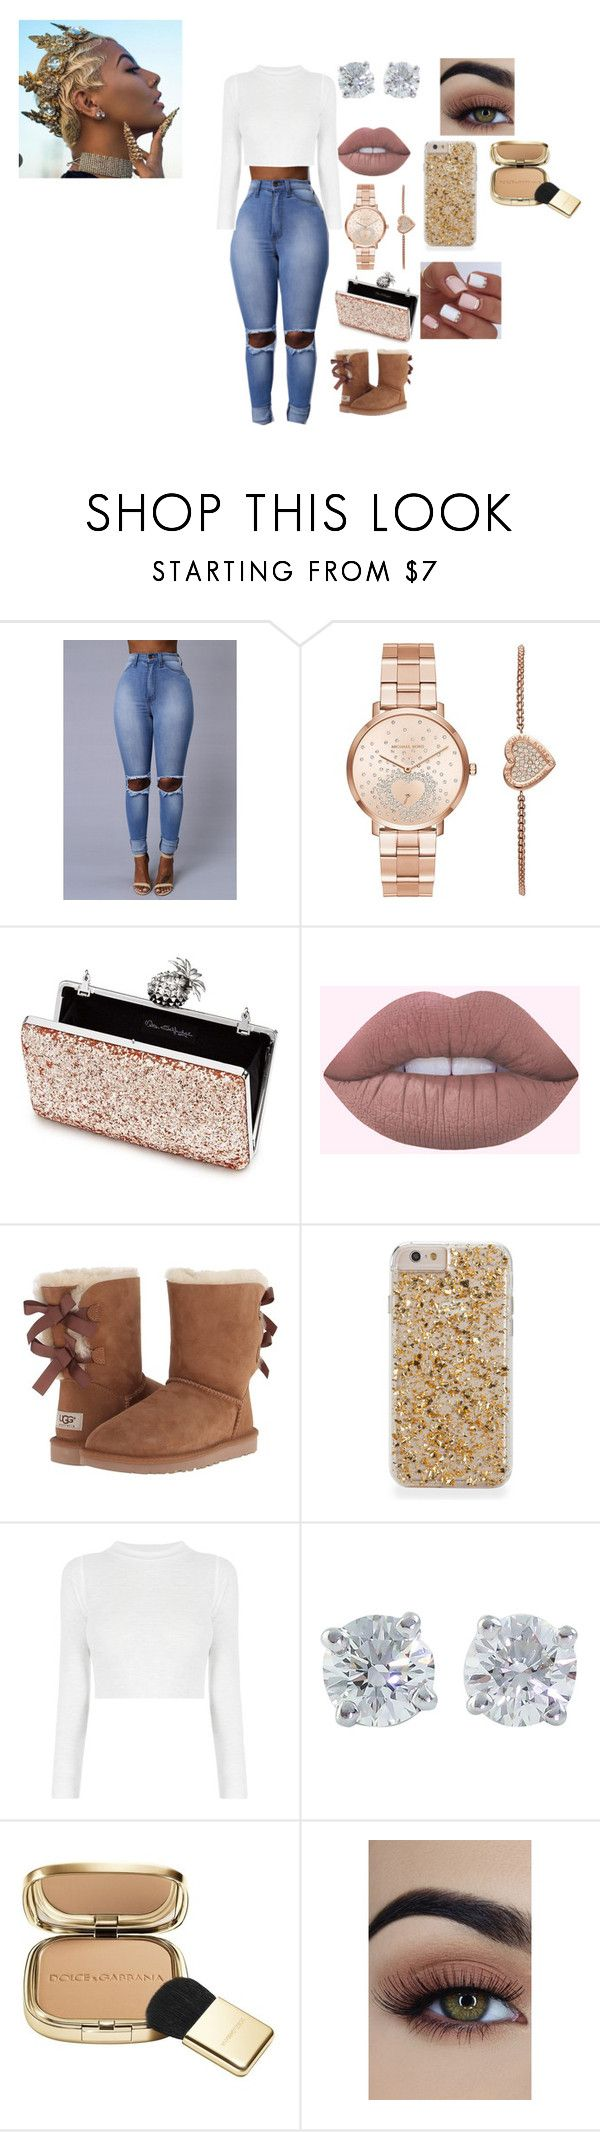 """""""bored AGAIN fw it"""" by ateria ❤ liked on Polyvore featuring Michael Kors, Miss Selfridge, Lime Crime, UGG Australia, Tiffany & Co. and Dolce&Gabbana"""